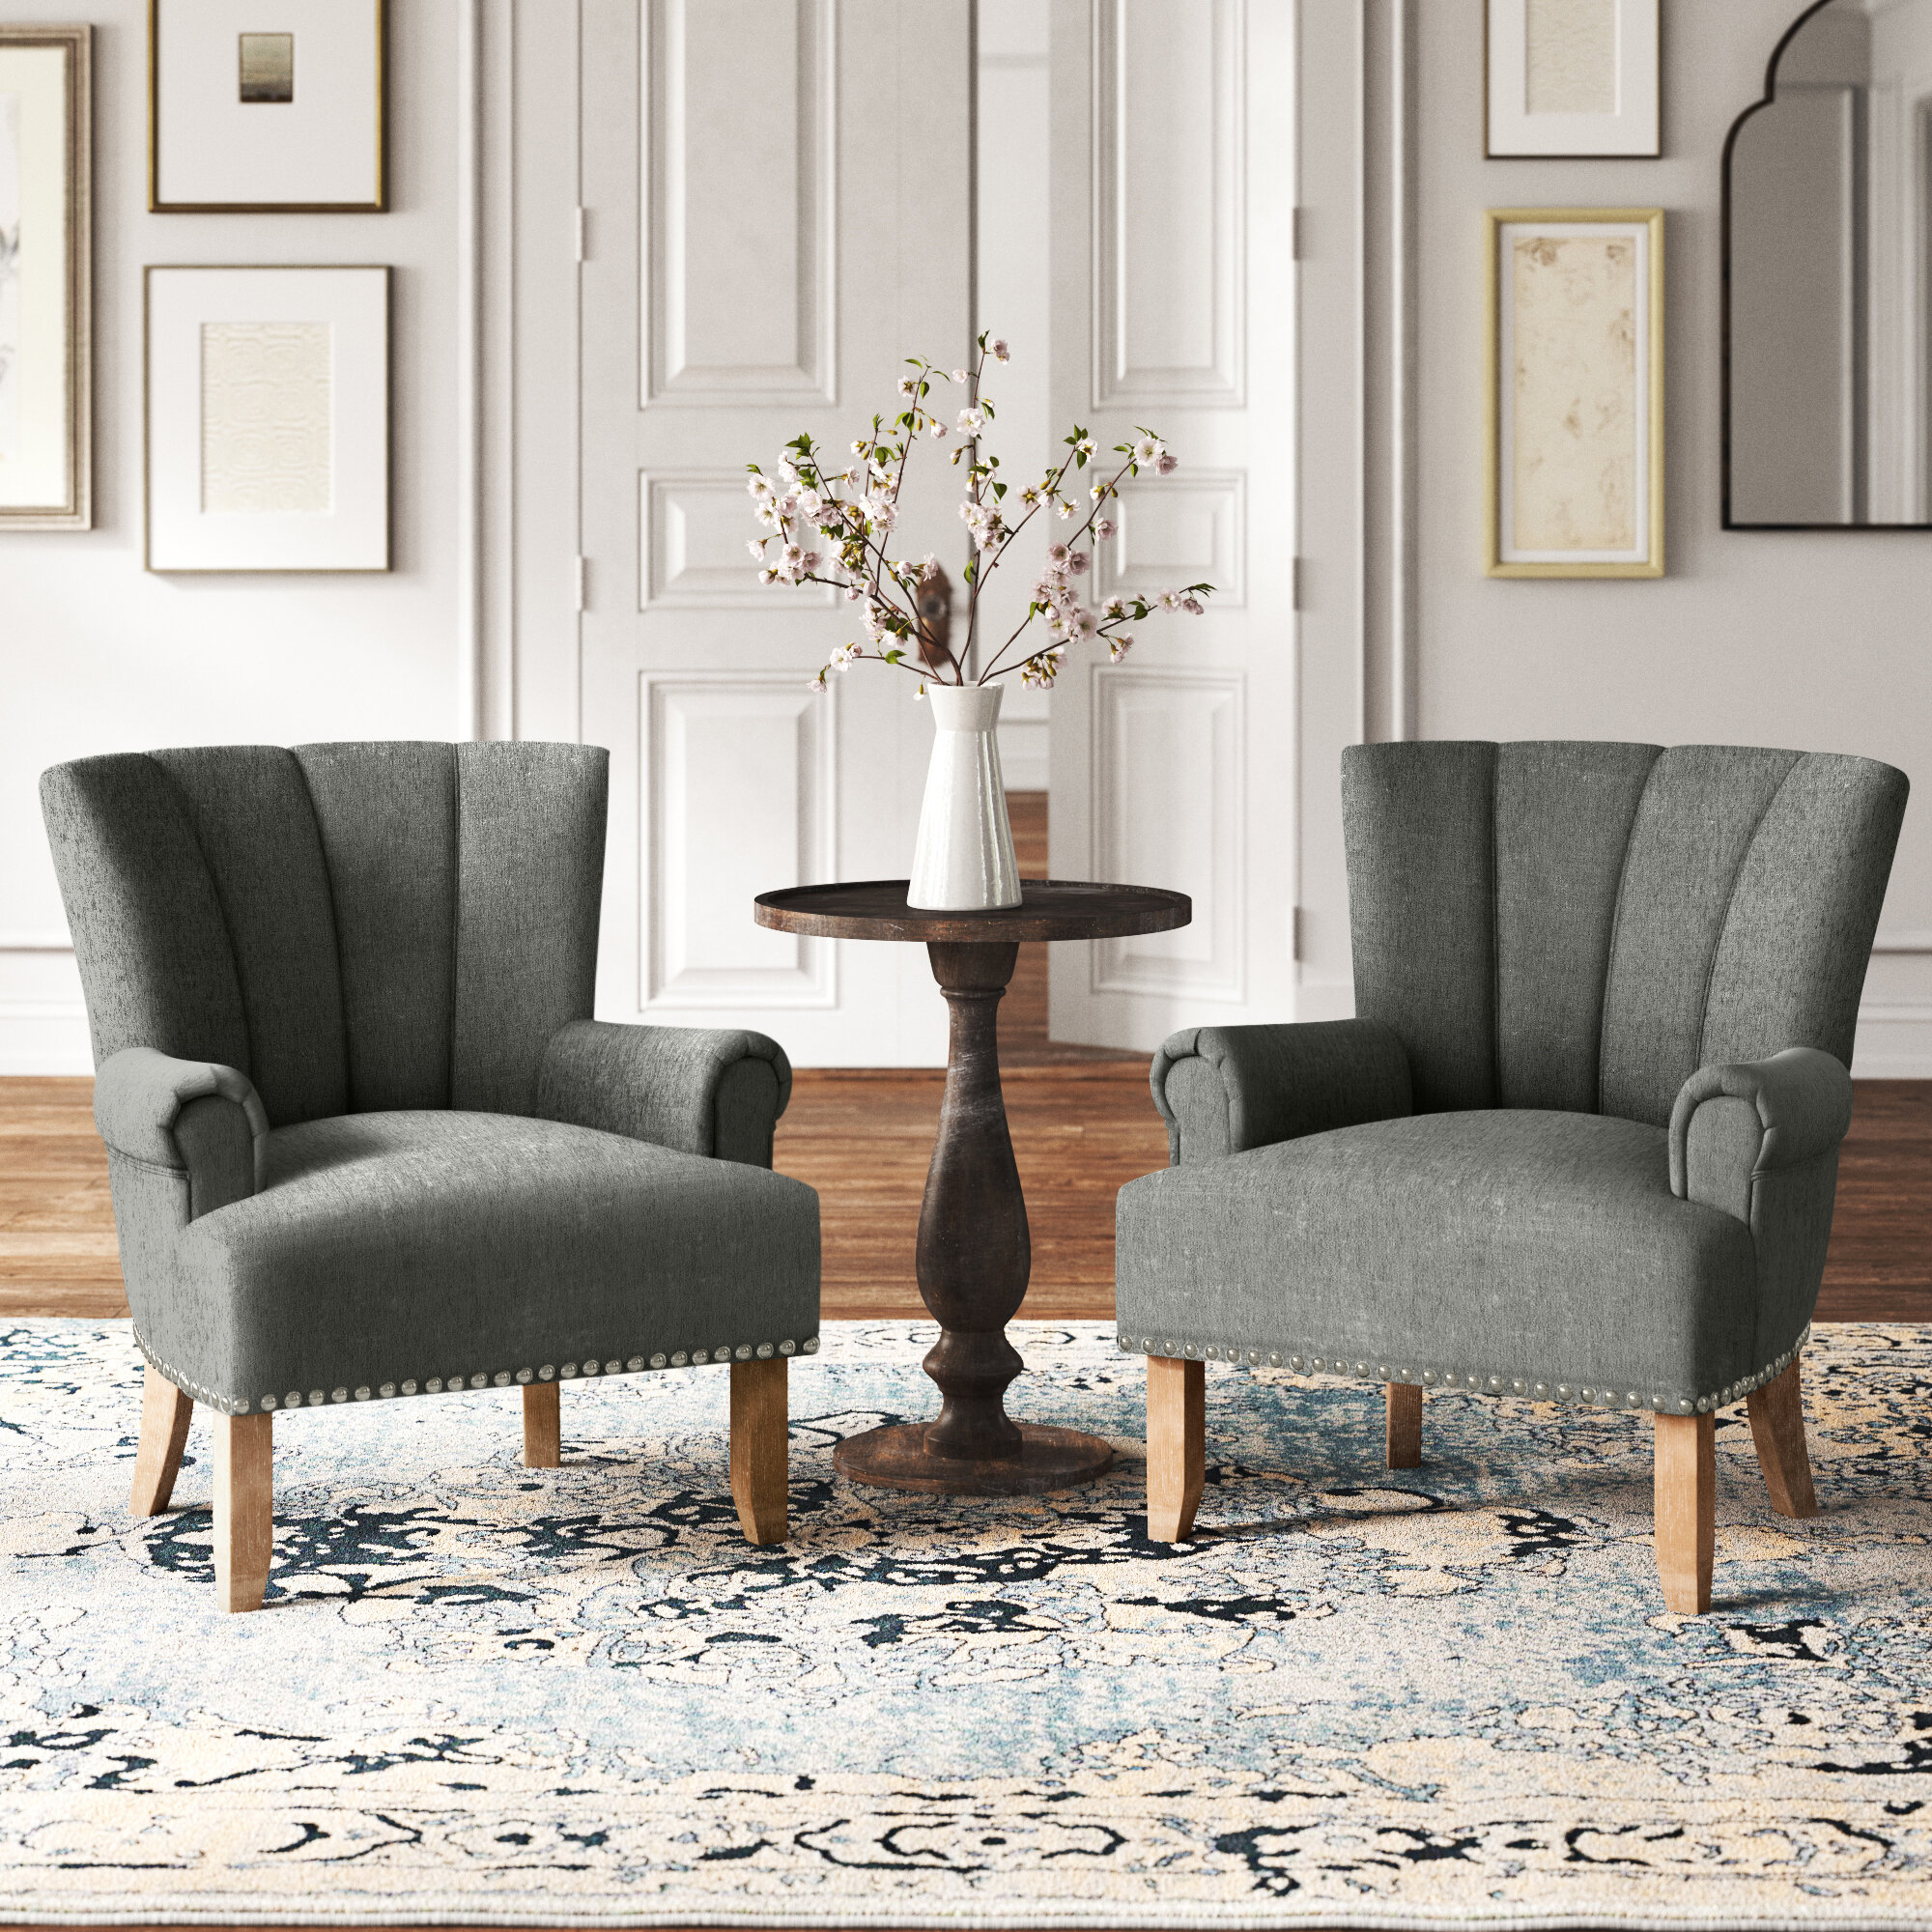 Chair Set Accent Chairs You'Ll Love In 2021 | Wayfair In Goodspeed Slipper Chairs (Set Of 2) (View 13 of 15)